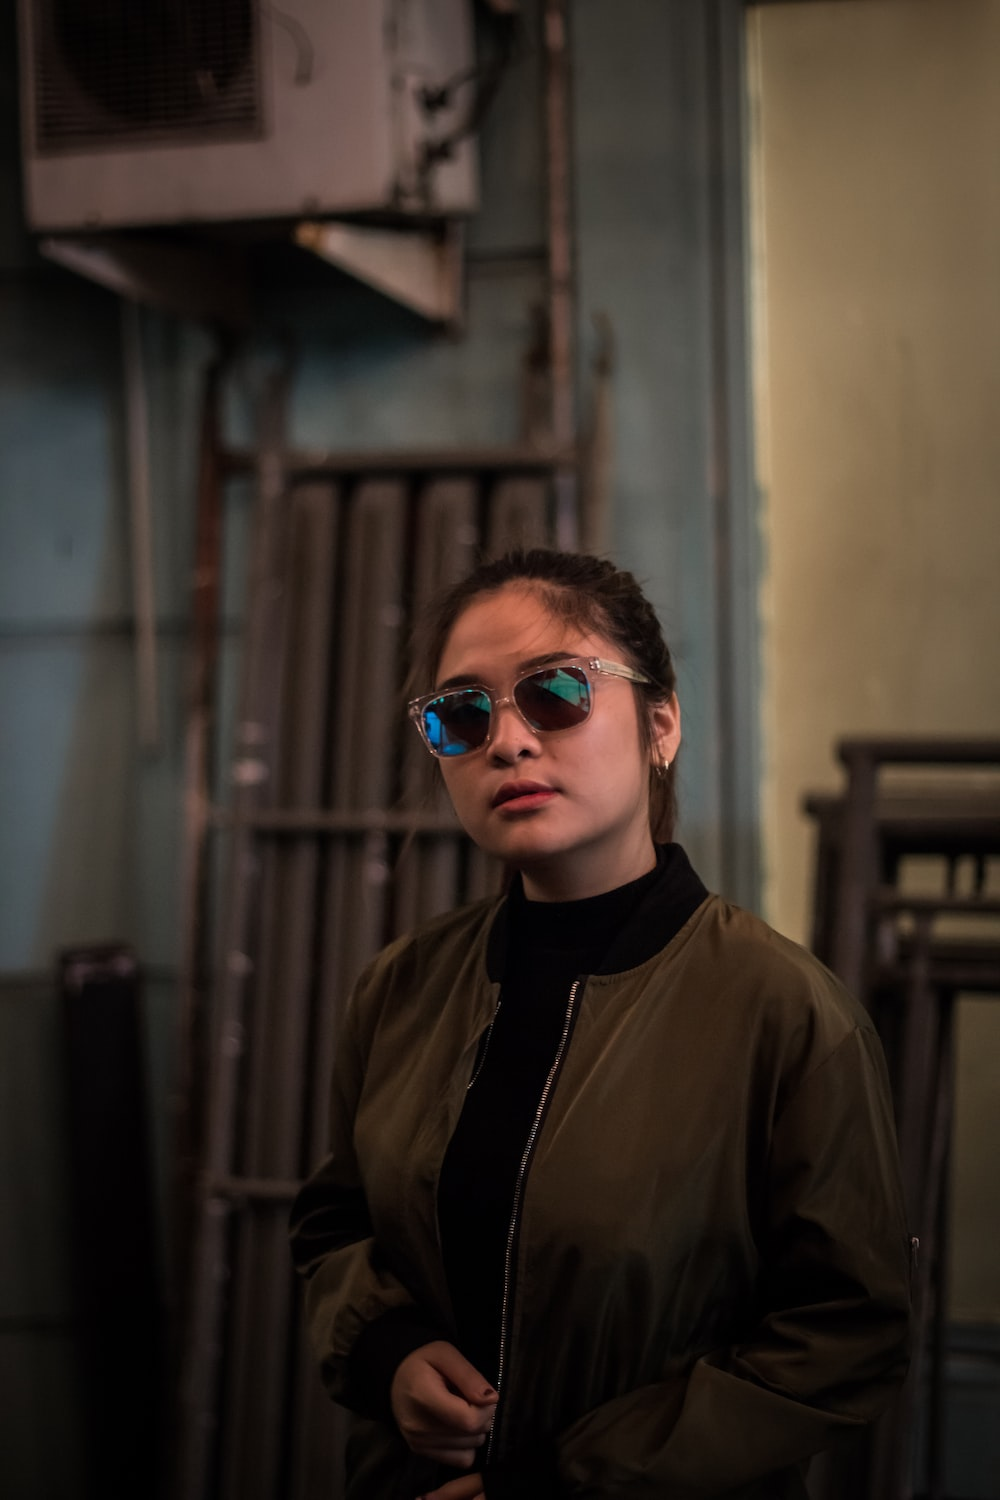 woman wearing sunglasses and brown jacket